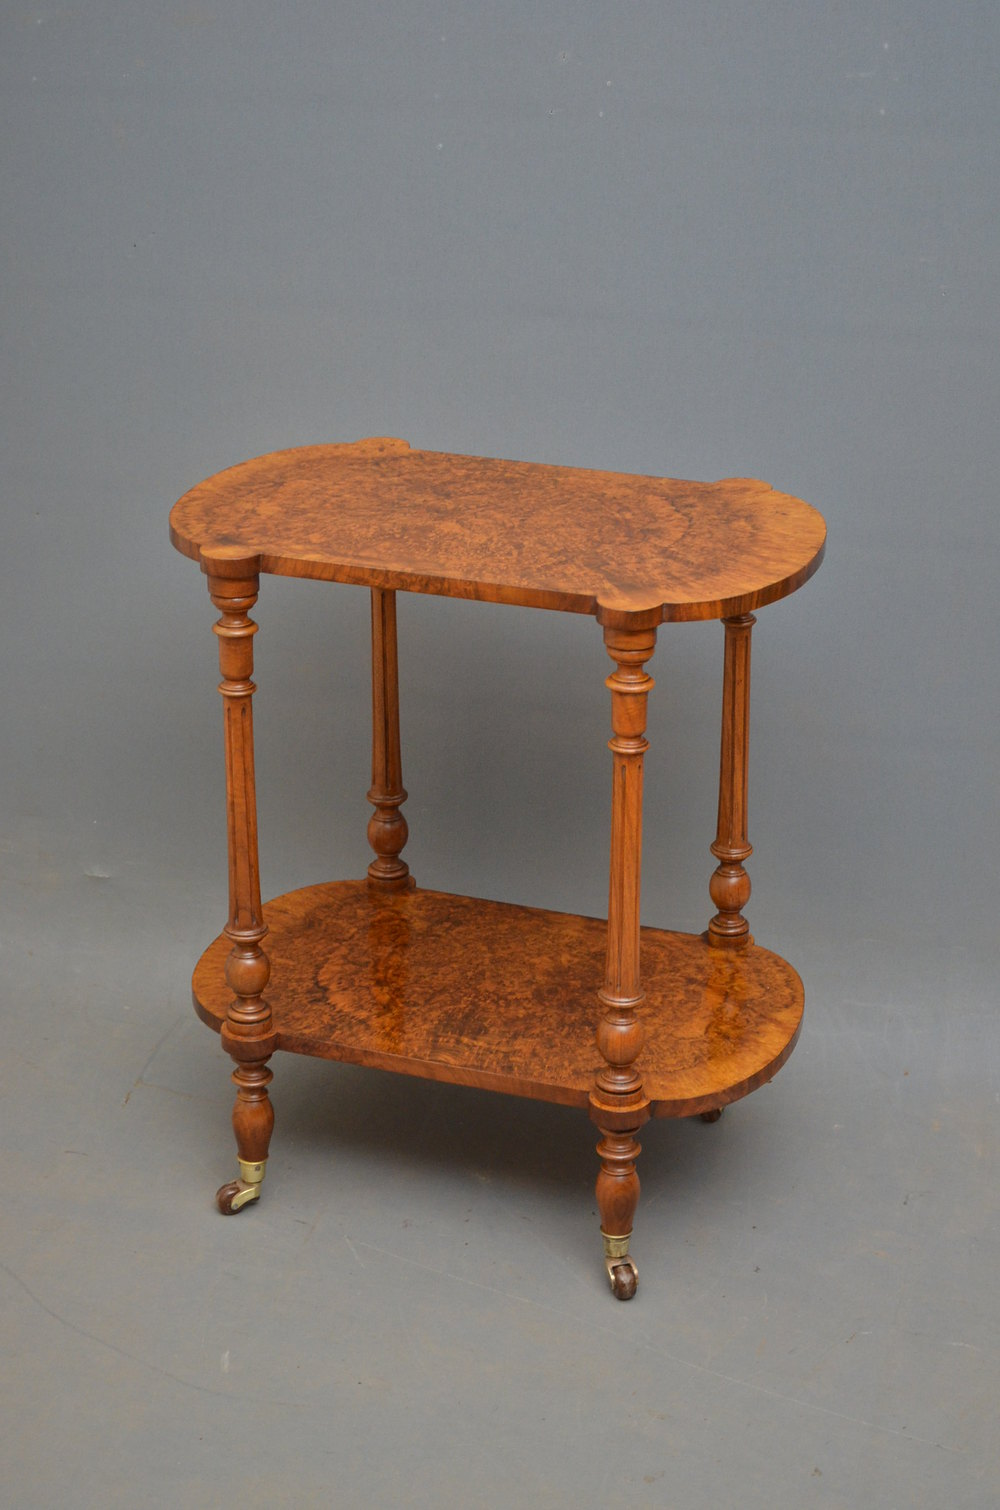 Attractive Victorian Burr Walnut Coffee Table 2 Tier Stand Having 2